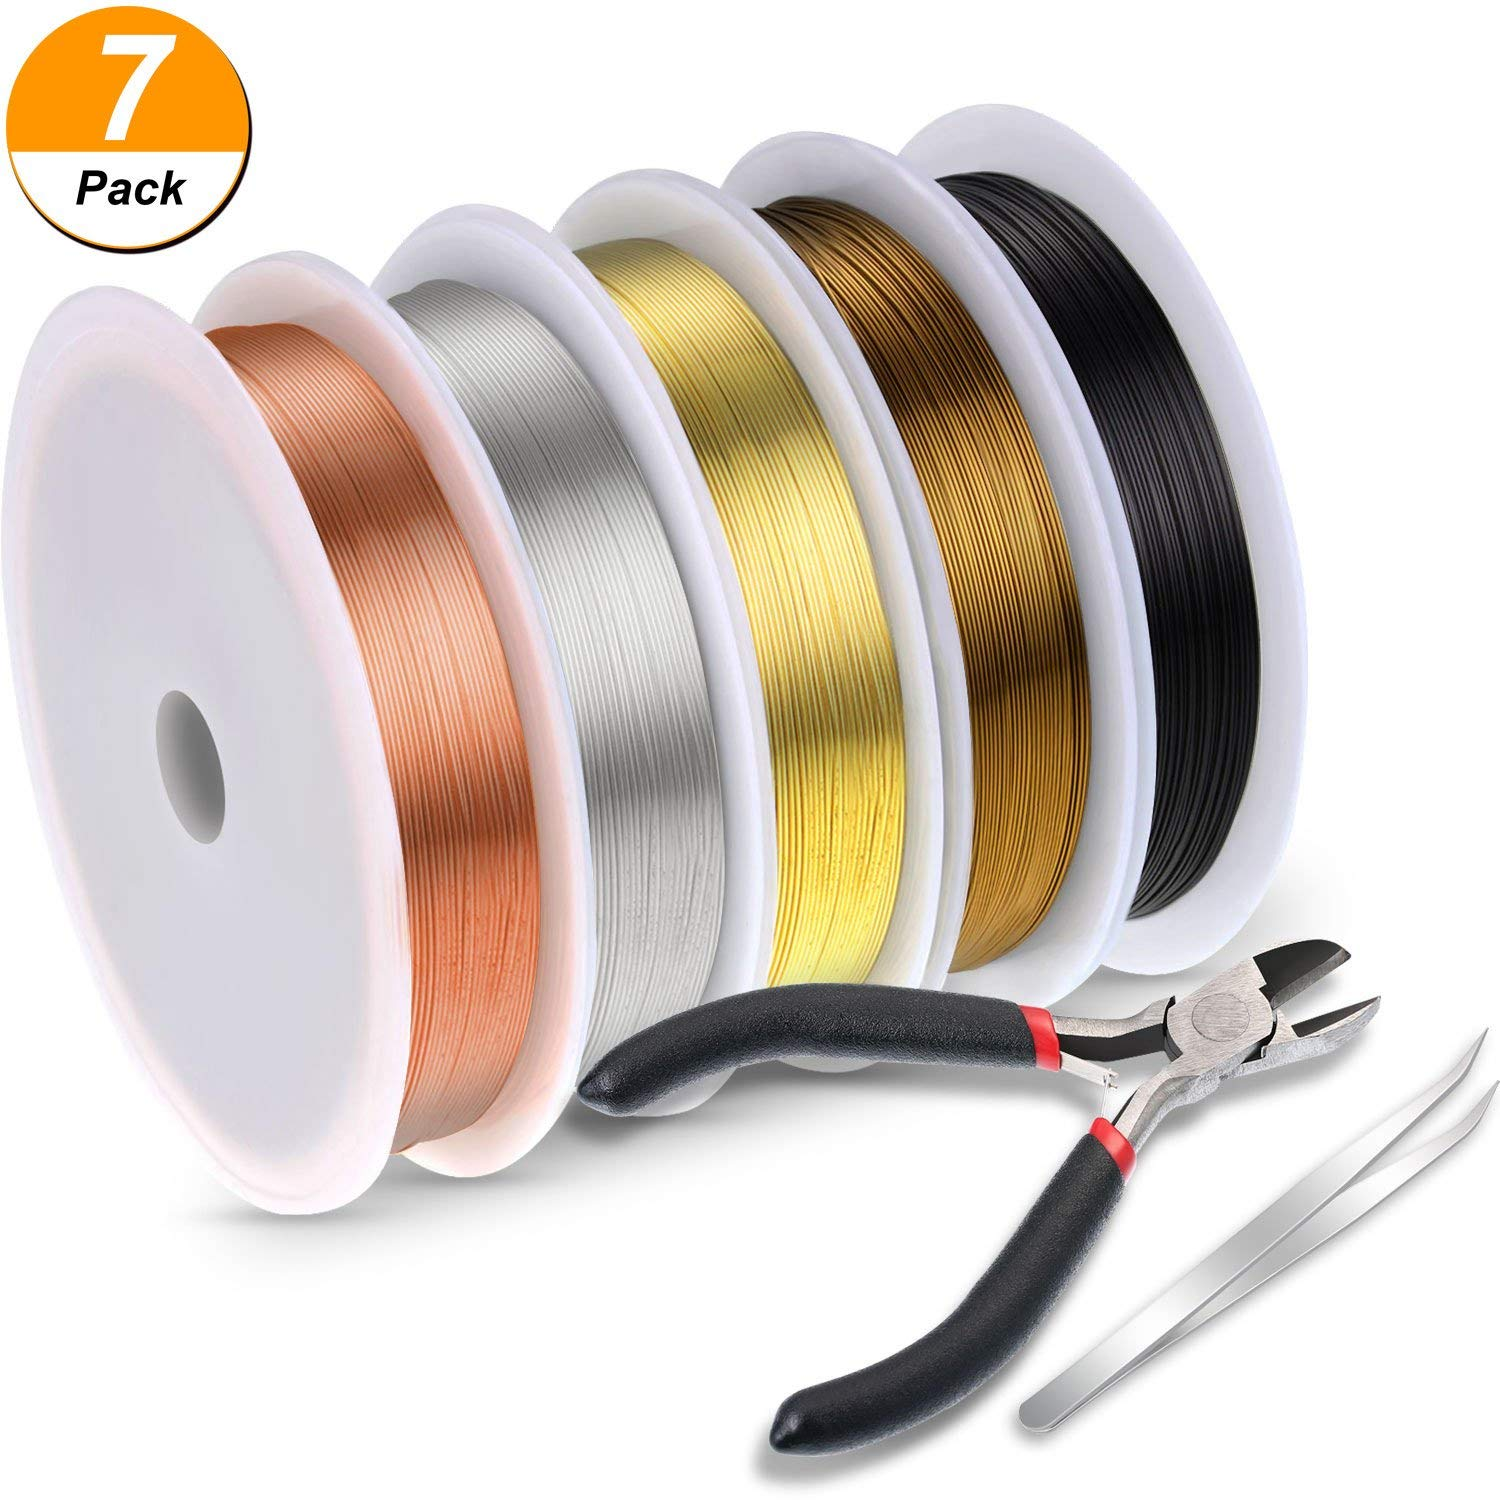 Frienda 5 Rolls 26 Gauge Copper Wire Beading Wire with Cutting Plier and Tweezer for Jewelry Making DIY